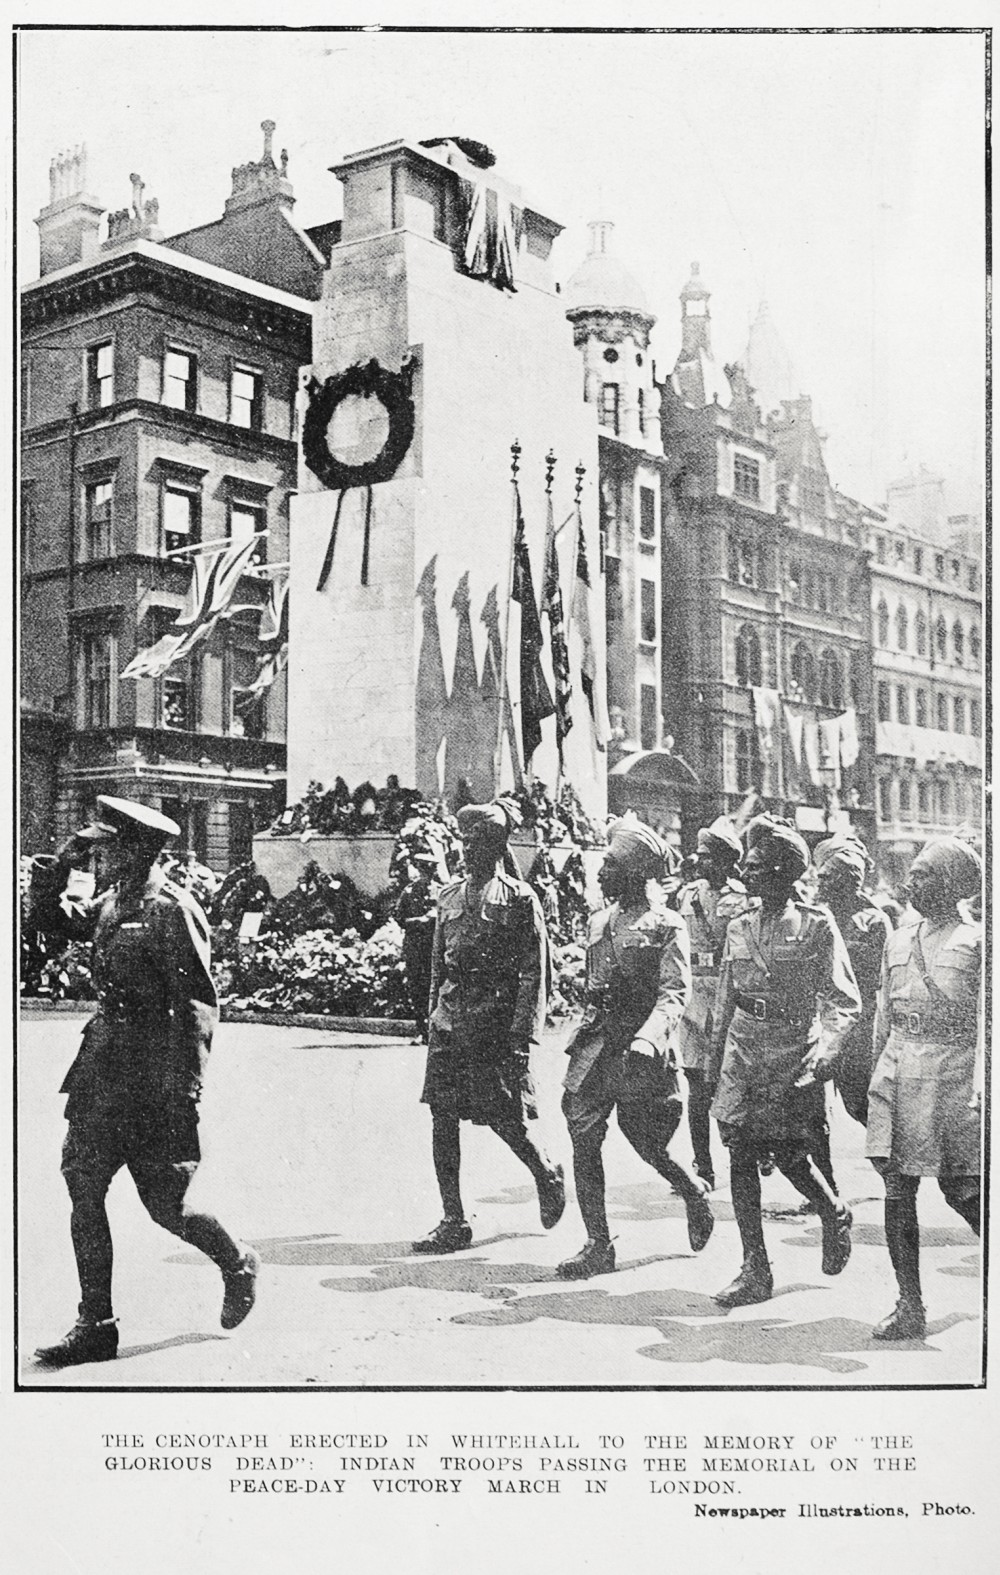 The cenotaph erected in Whitehall to the memory of 'The Glorious Dead': Indian troops passing the memorial on the peace-day victory march in London. - Auckland Libraries